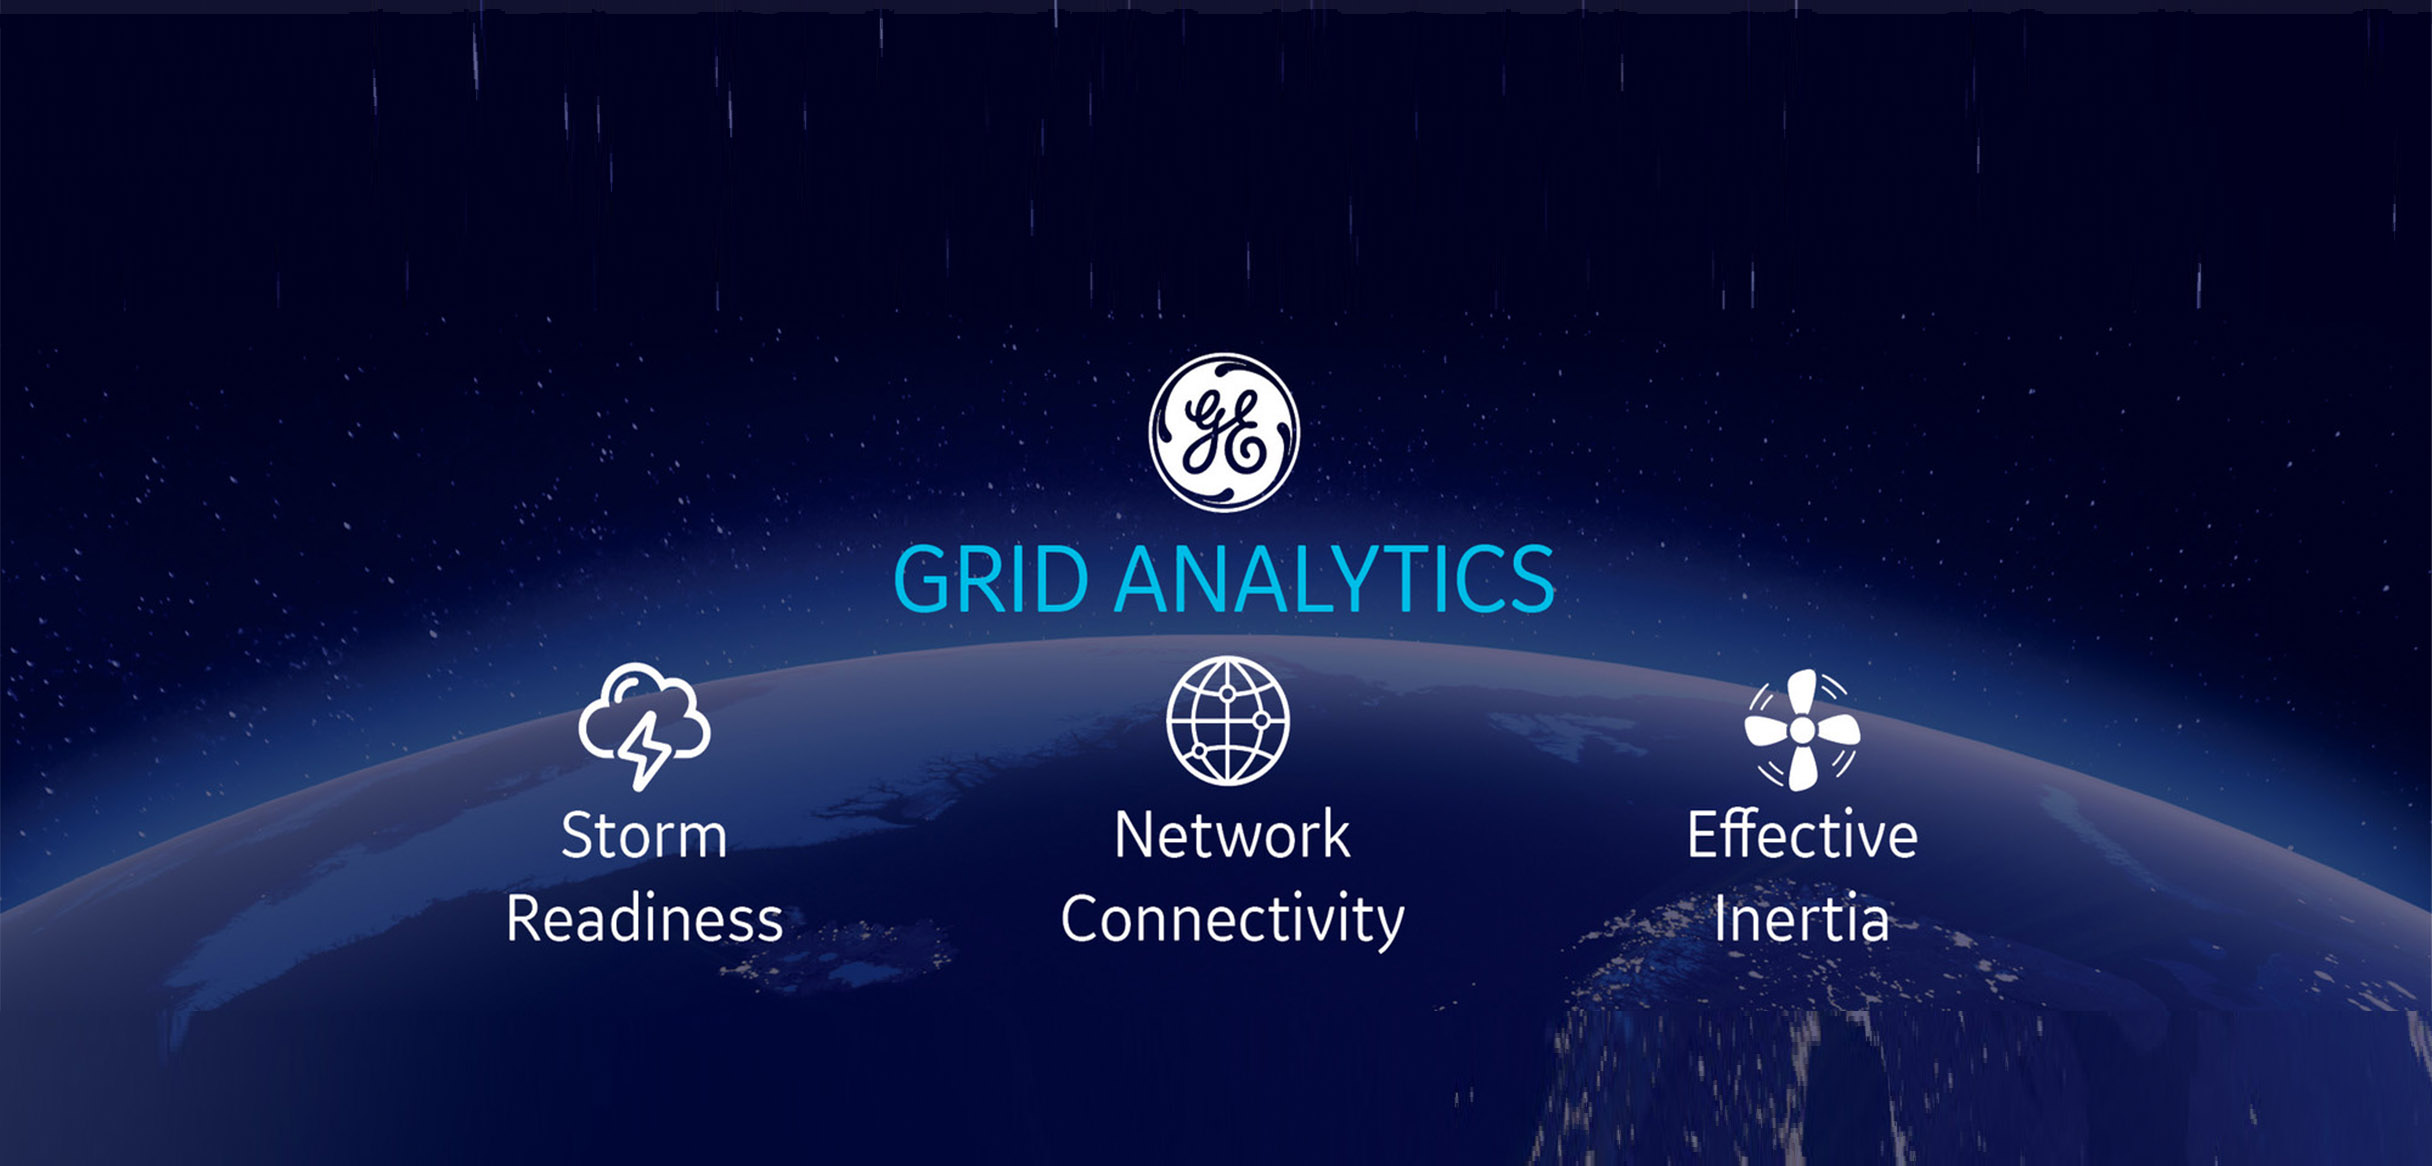 Grid Analytics to help with storm readiness and network connectivity | GE Digital Energy